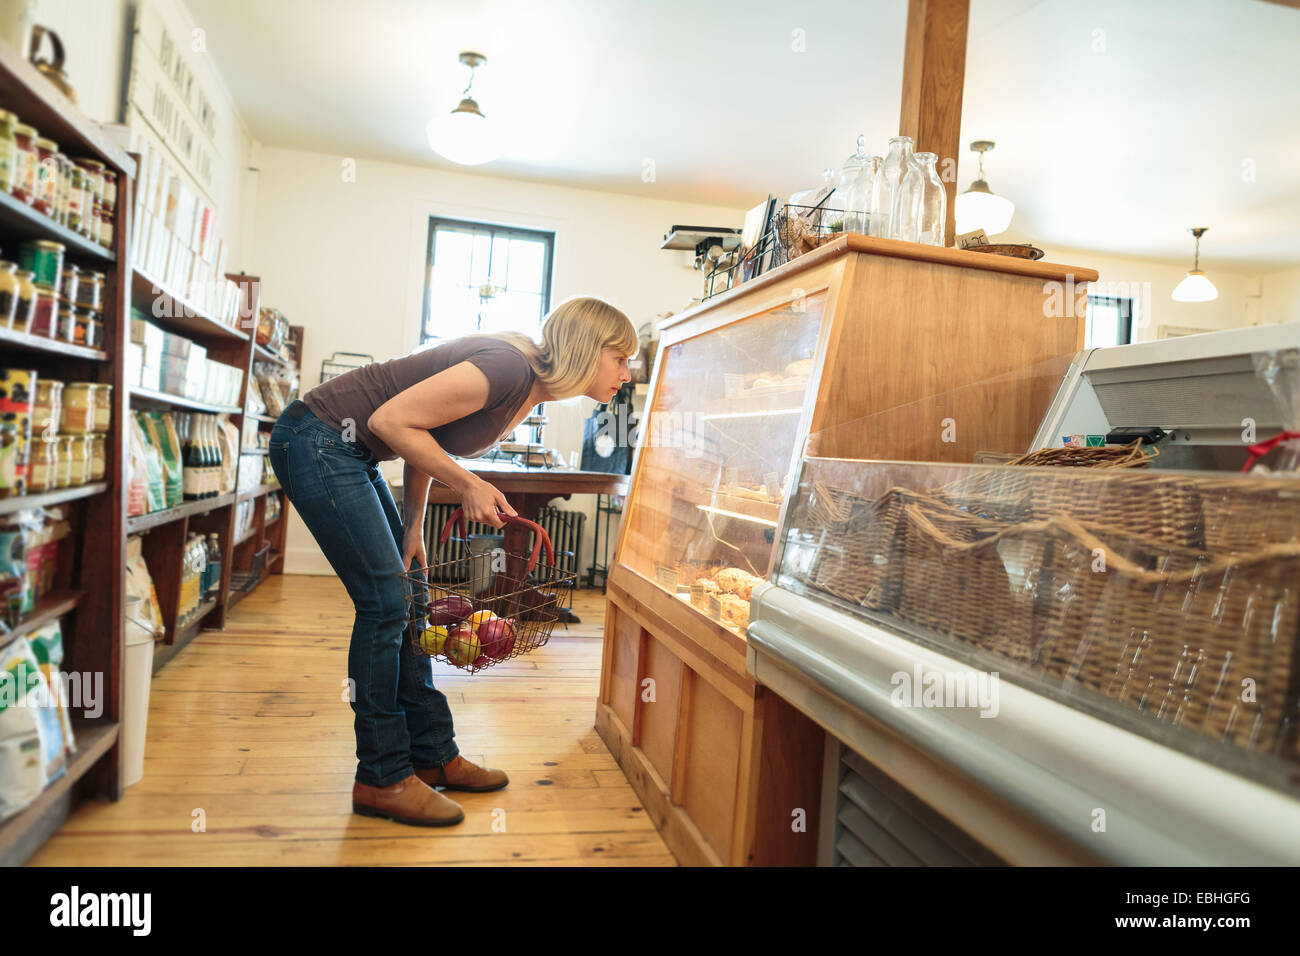 Female customer leaning to look at display cabinet in country store - Stock Image